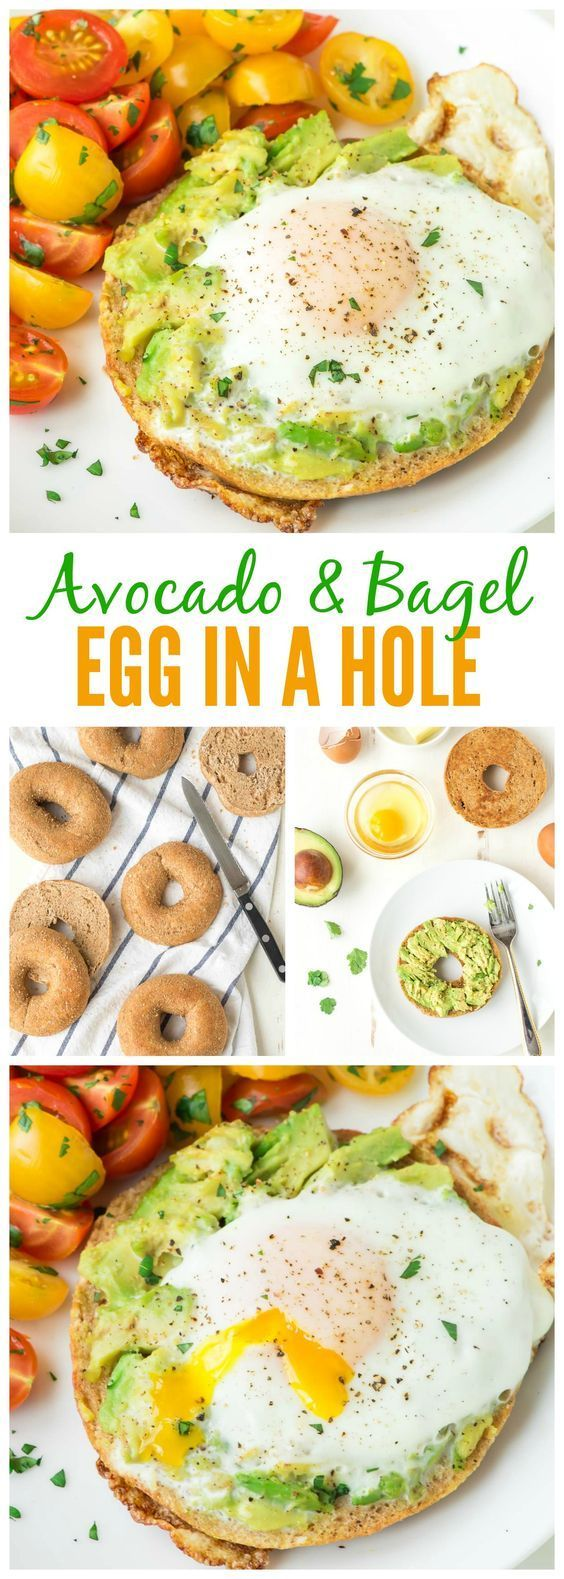 Egg in a Hole, cooked inside a bagel with smashed avocado on top. Our family's favorite breakfast, and it's perfect for easy, healthy lunches and dinners too! Recipe at www.wellplated.com | @wellplated